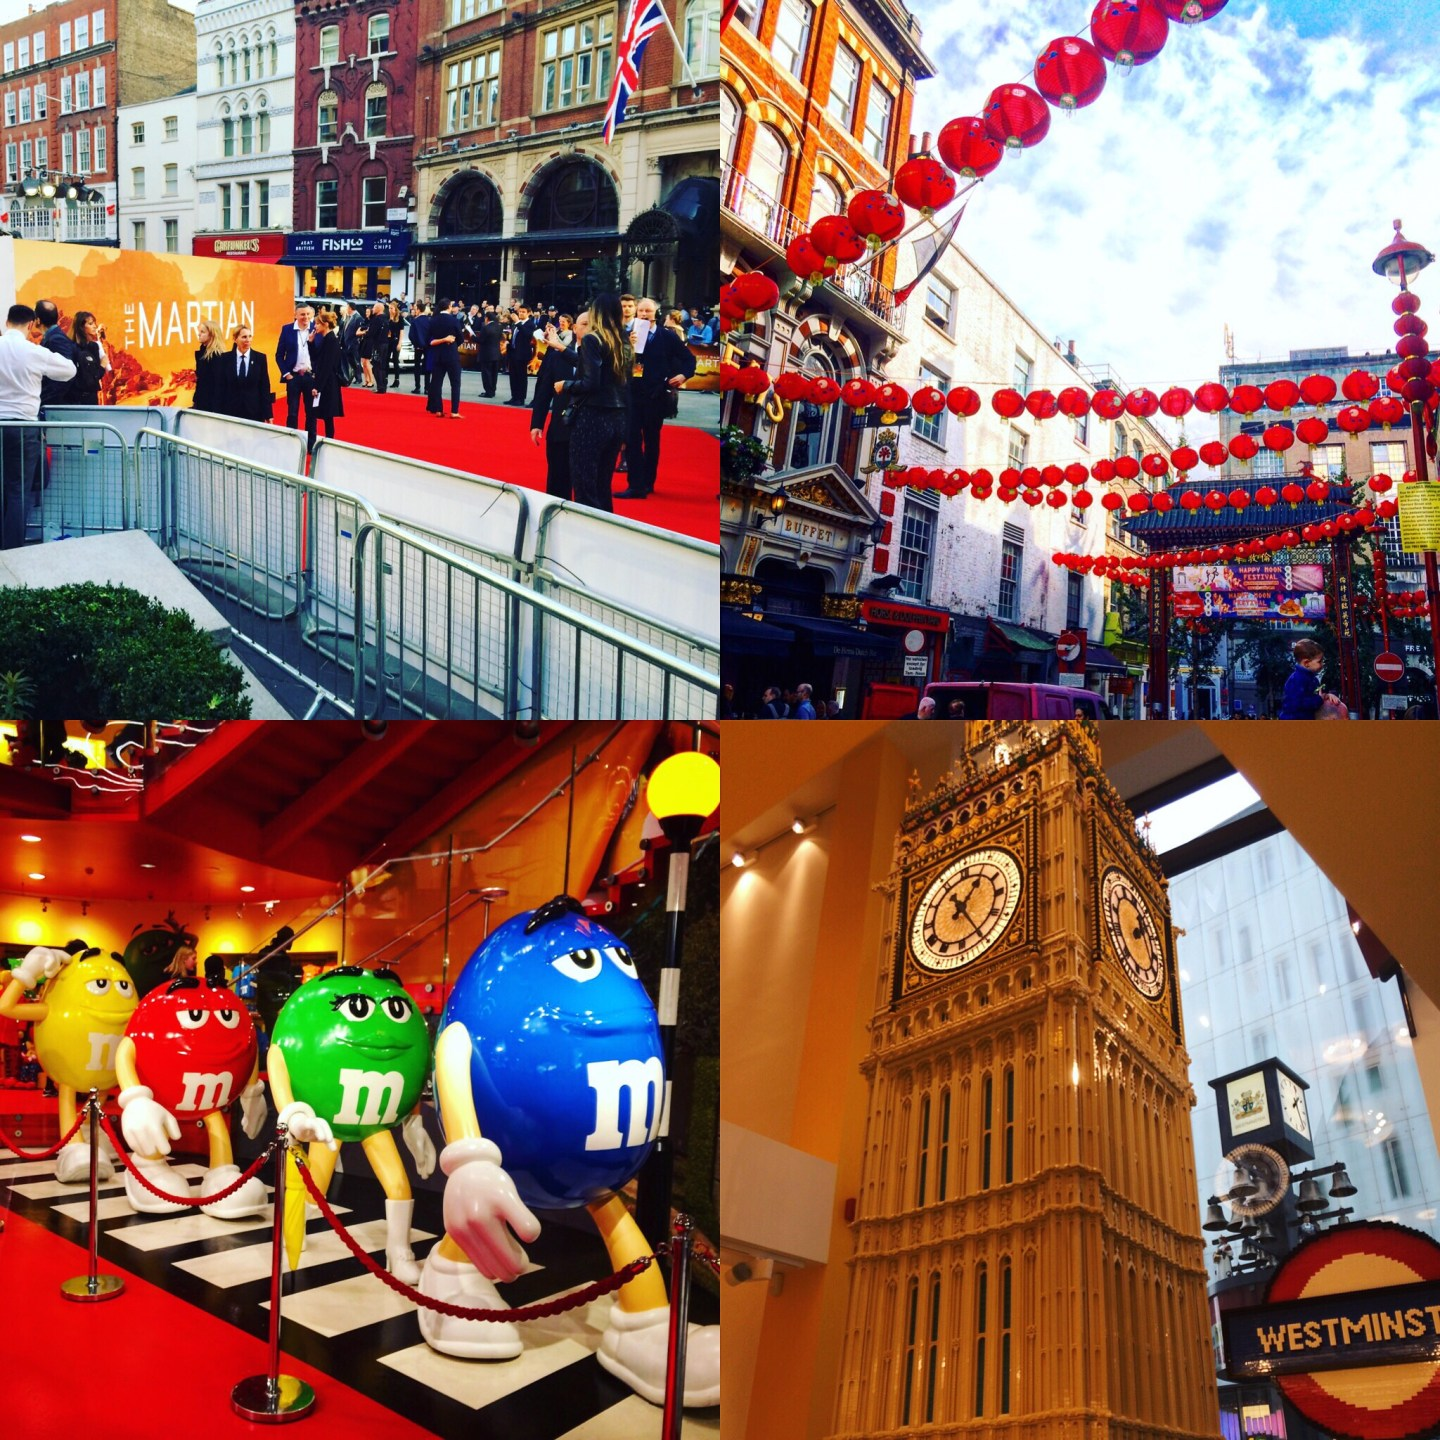 10 Things to do Around Leicester Square